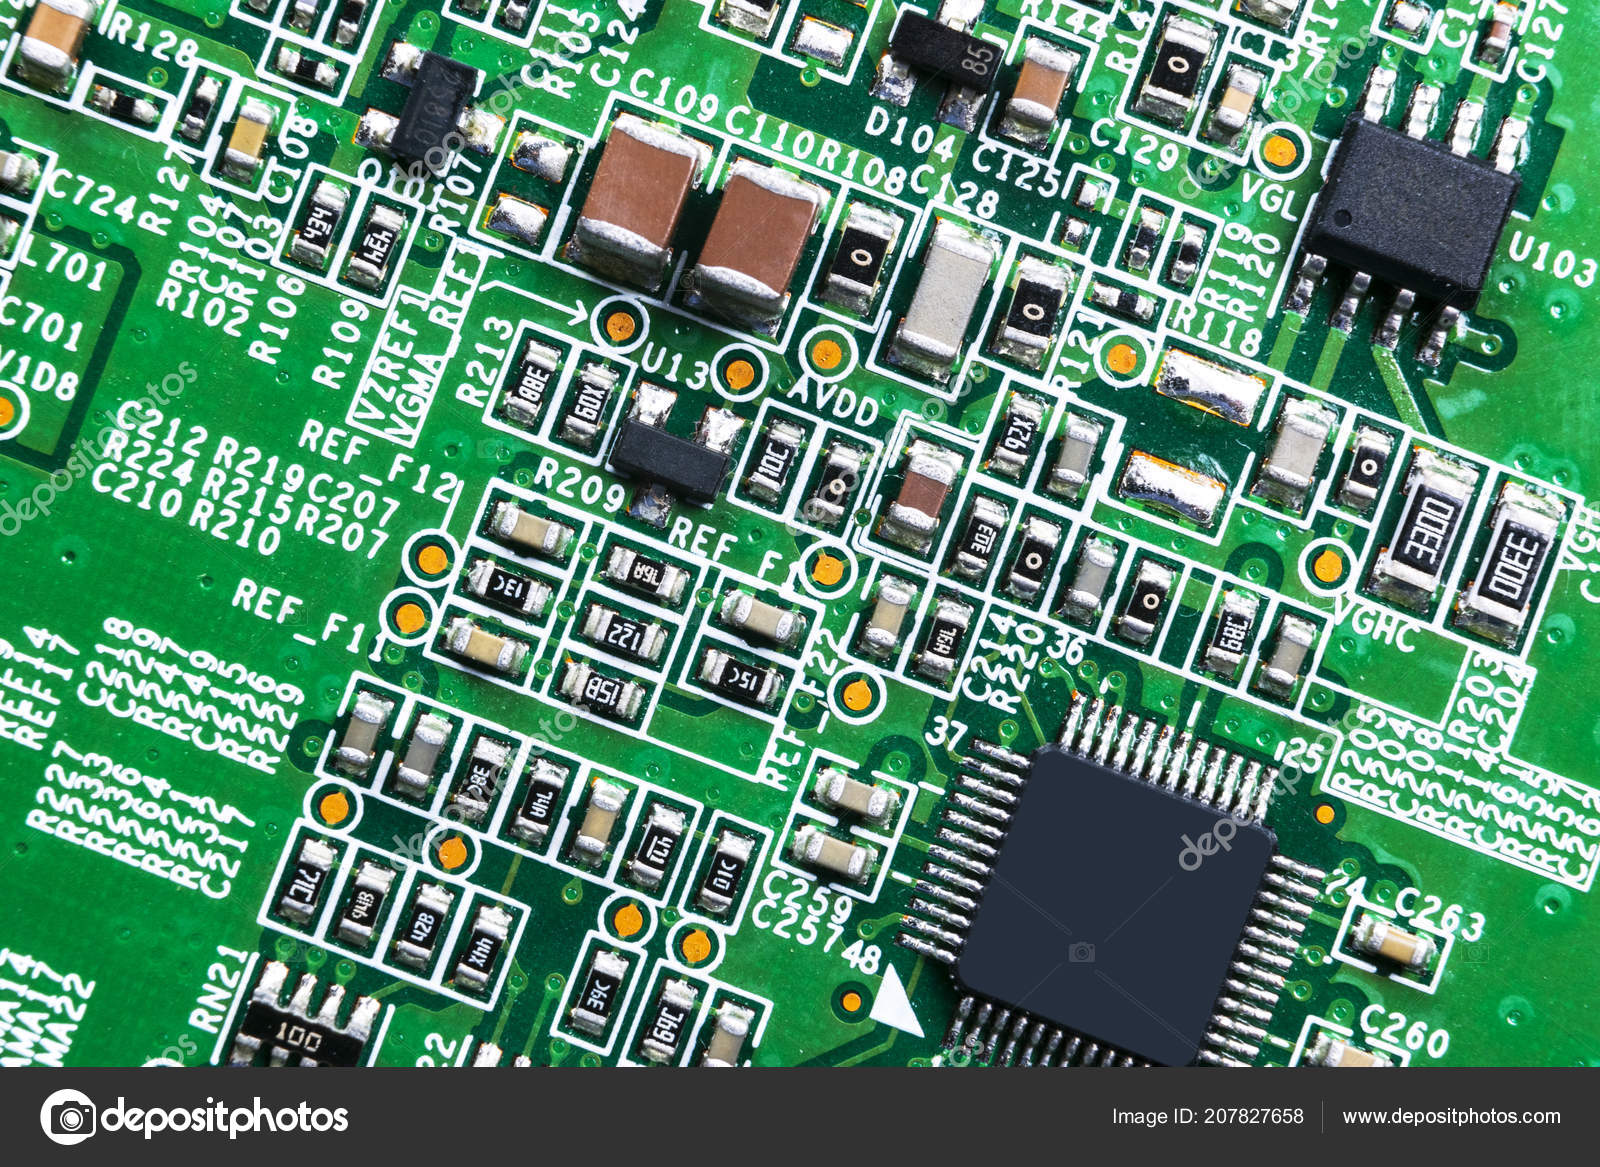 Macro Shot Circuitboard Resistors Microchips Electronic Components Circuit Board Resistor Computer Hardware Technology Stock Photo